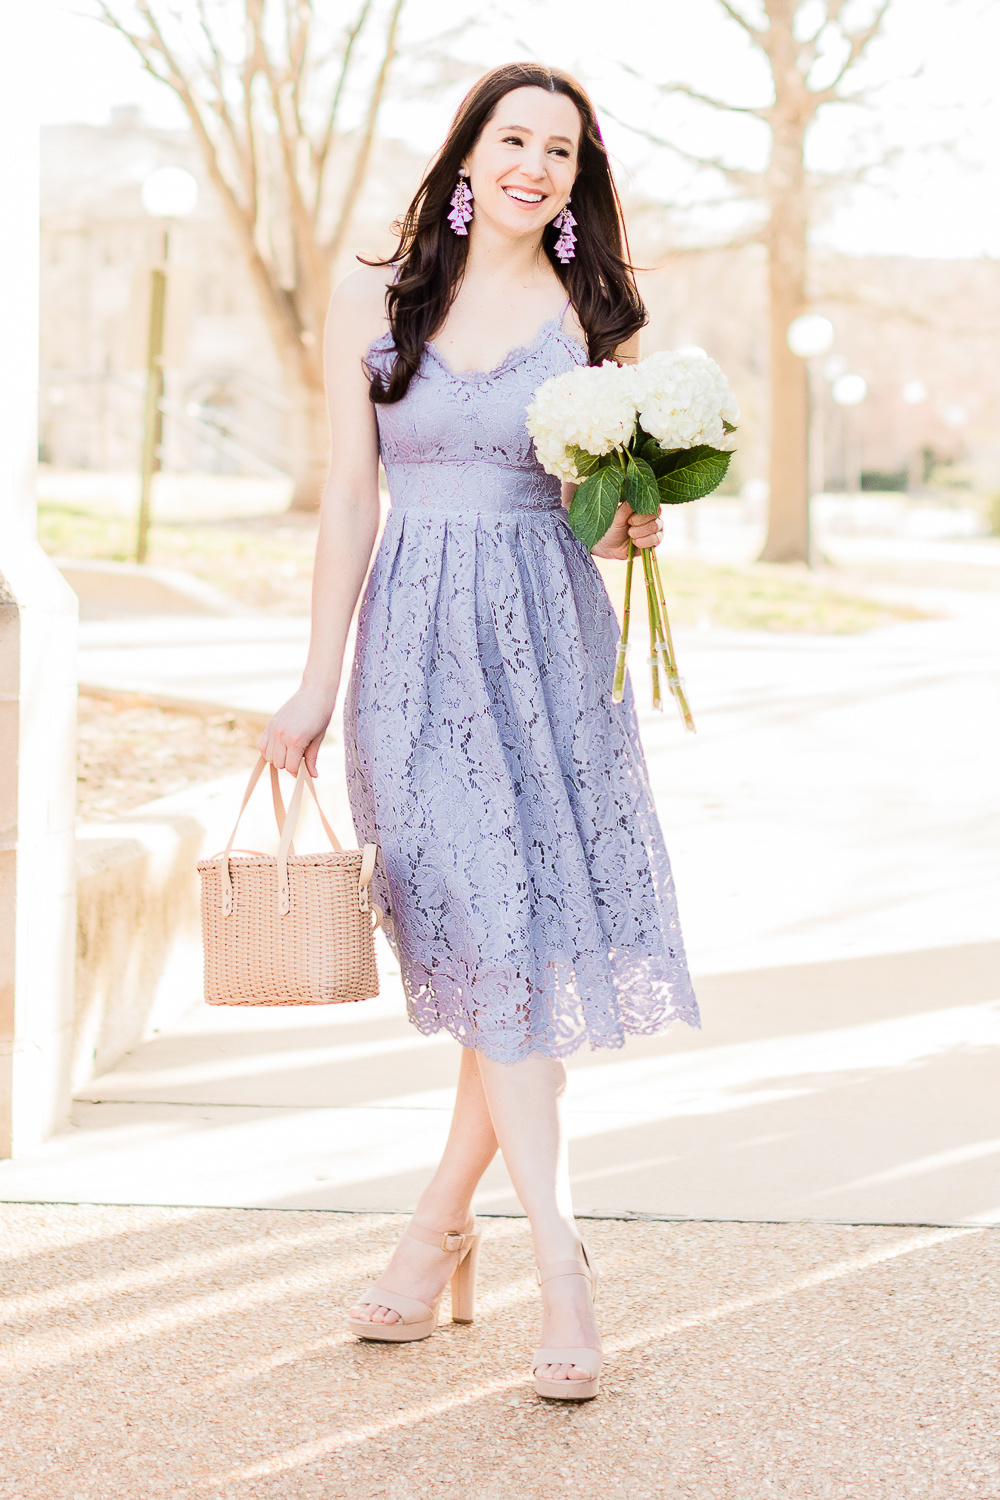 Color Crush: The Lilac Lace Dress I'm Wearing on Repeat This Spring by popular affordable fashion blogger Stephanie Ziajka from Diary of a Debutante, Chicwish lilac lace cami dress, Sugarfix by Baublebar lilac tassel drop earrings, Who What Wear Basket Crossbody Bag, what to wear to a spring wedding, spring wedding guest dress ideas